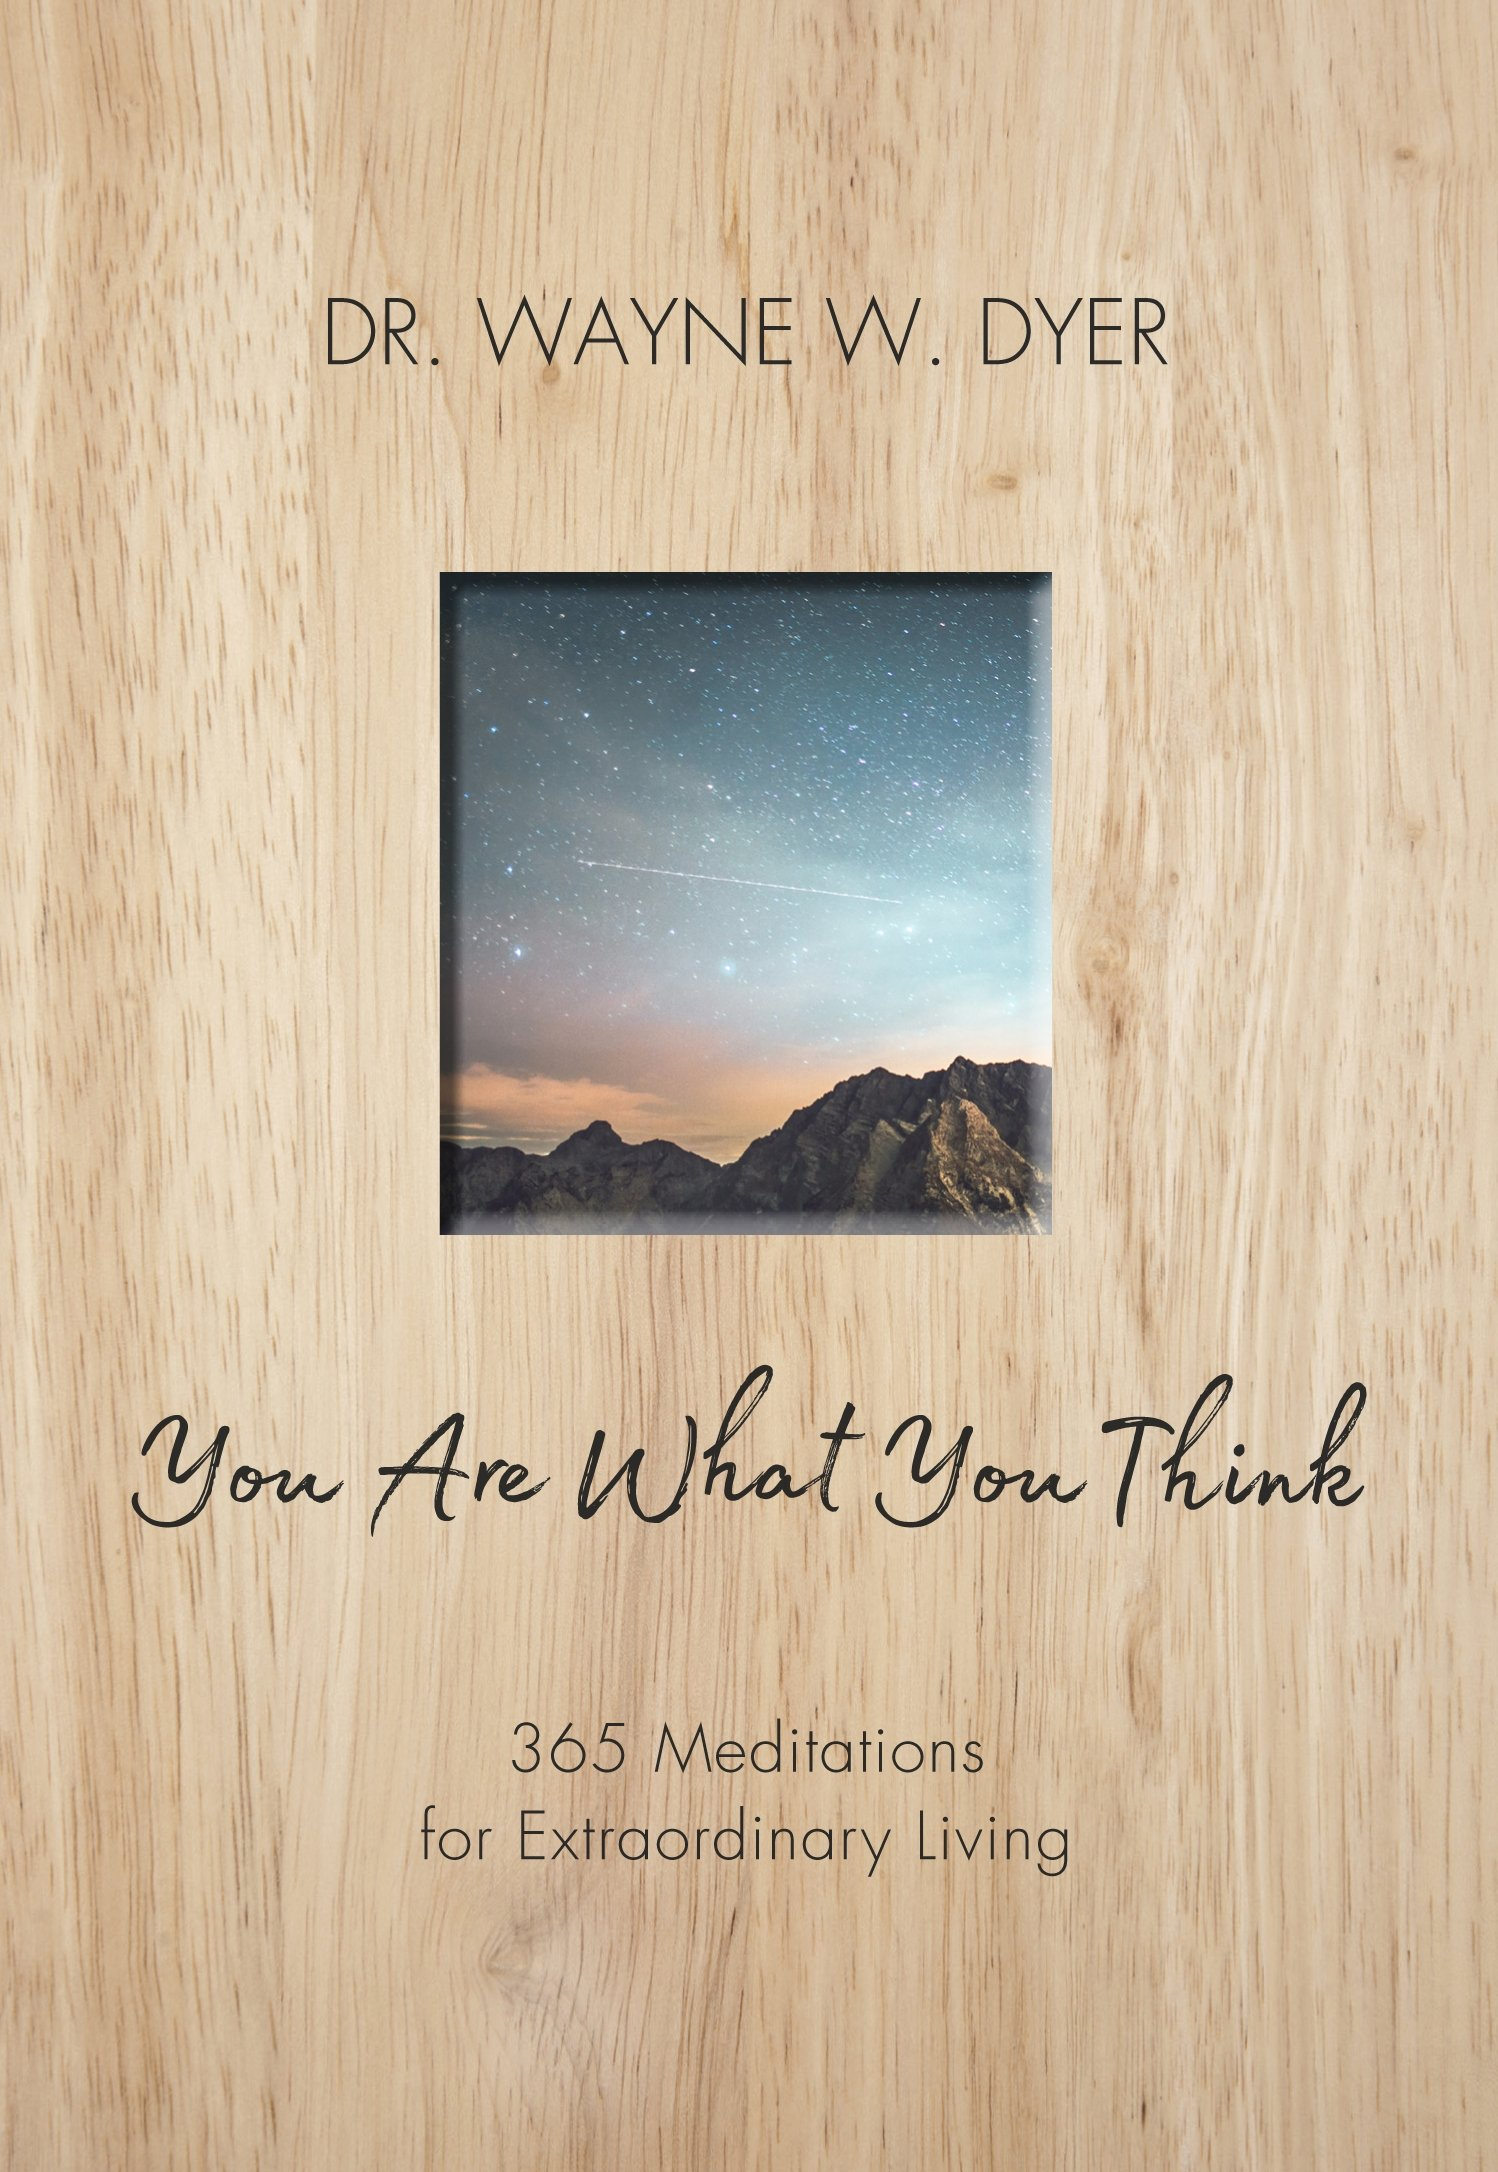 You Are What You Think: 365 Meditations for Purposeful Living